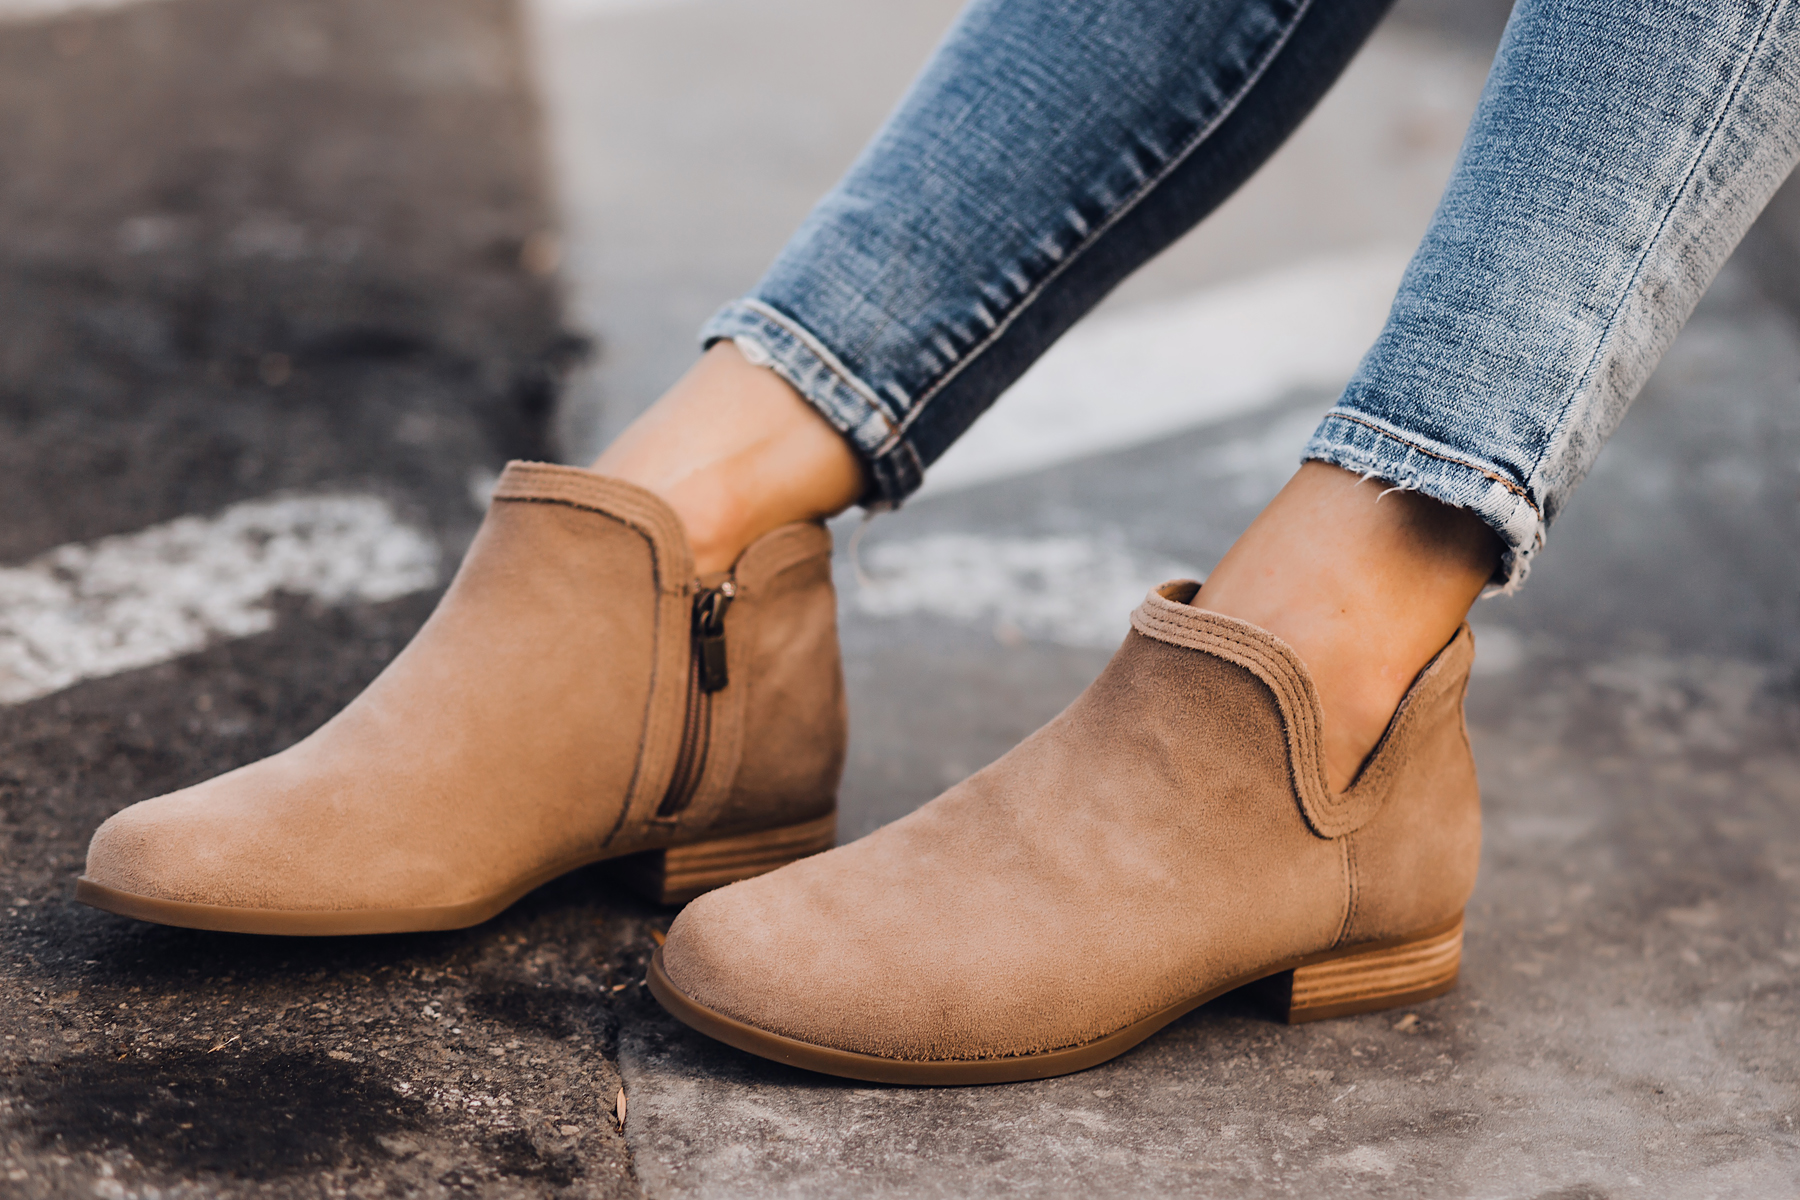 Woman Wearing Uggs Koolaburra Cheyanne Tan Booties Fashion Jackson San Diego Fashion Blogger Street Style